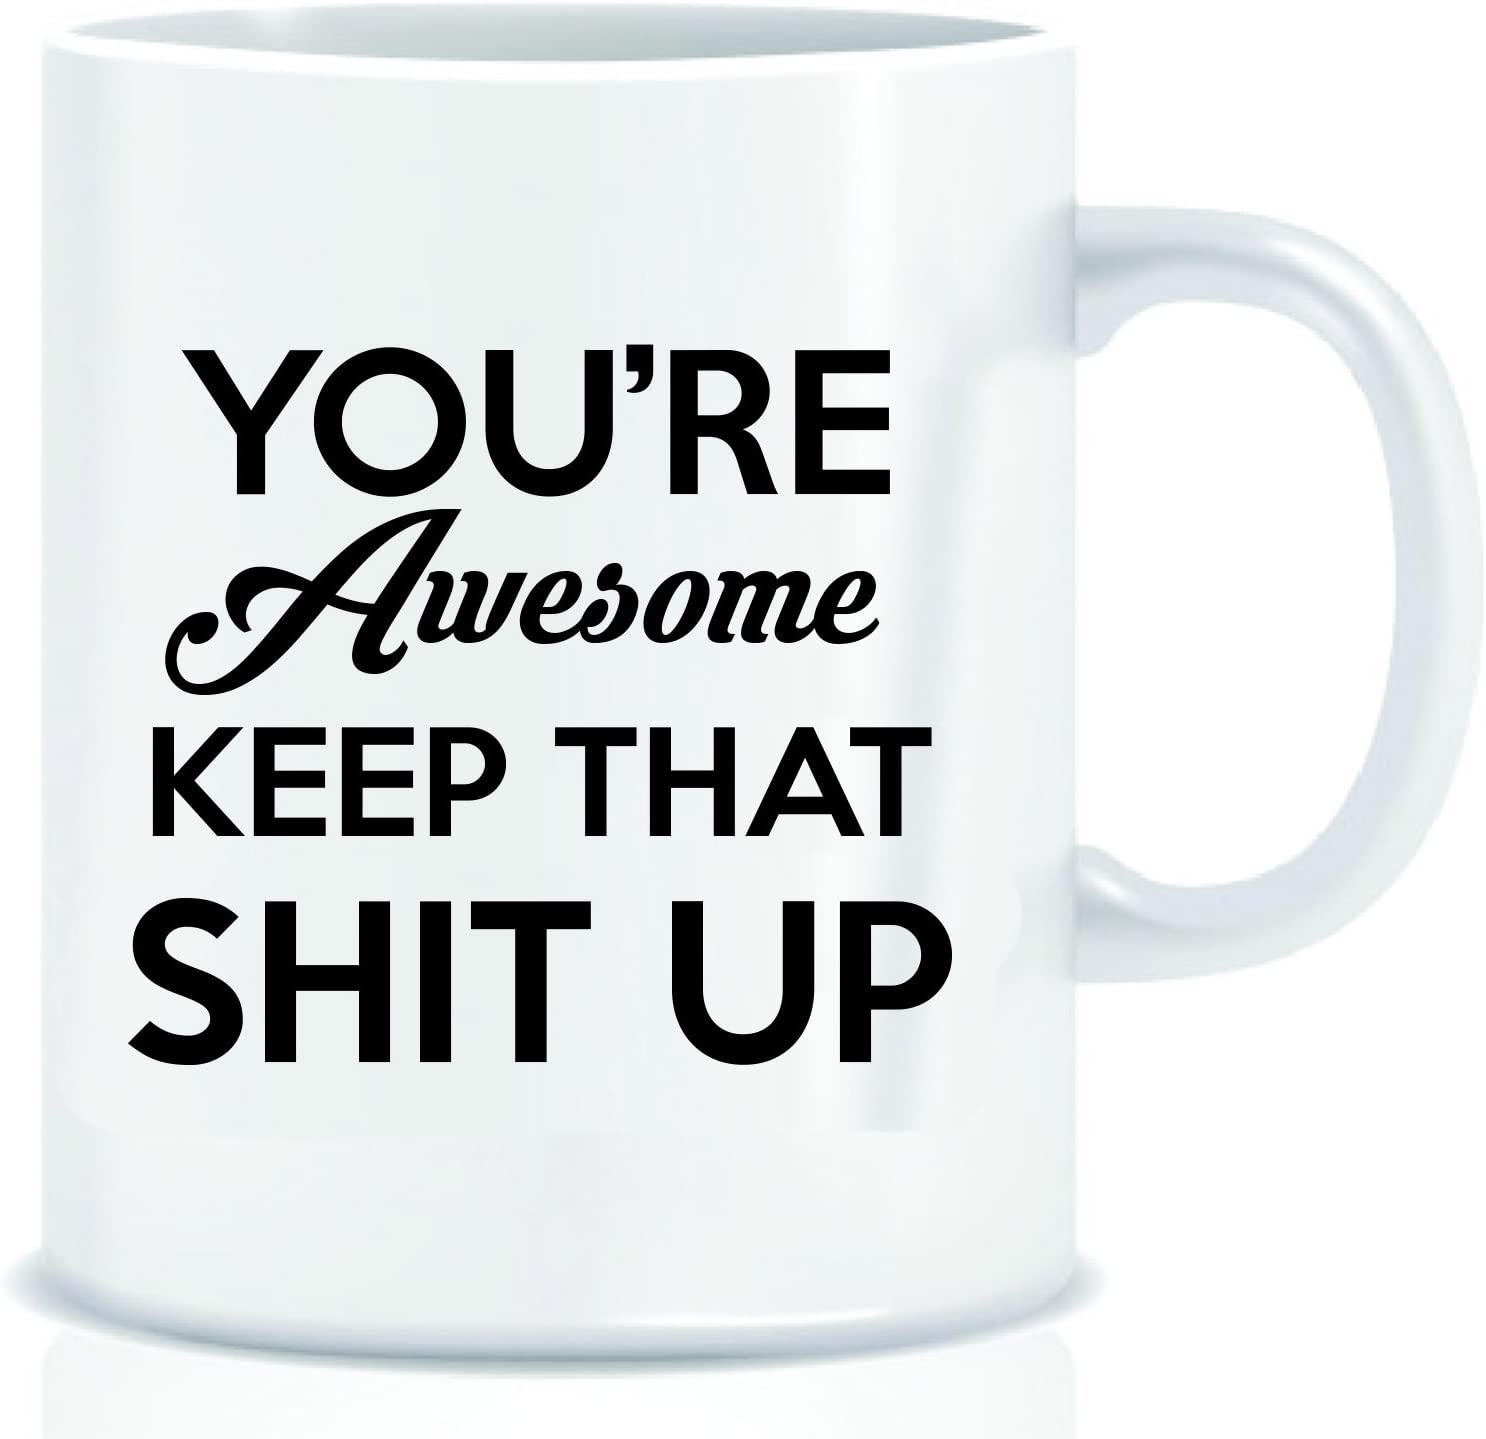 YOURE AWESOME KEEP THAT SHIT UP Coworkers Both Sides Printed Funny Coffee Mug with Quote 11 oz Mug Gift in Decorative Blue Ribbon Box Gifts for Family Friends